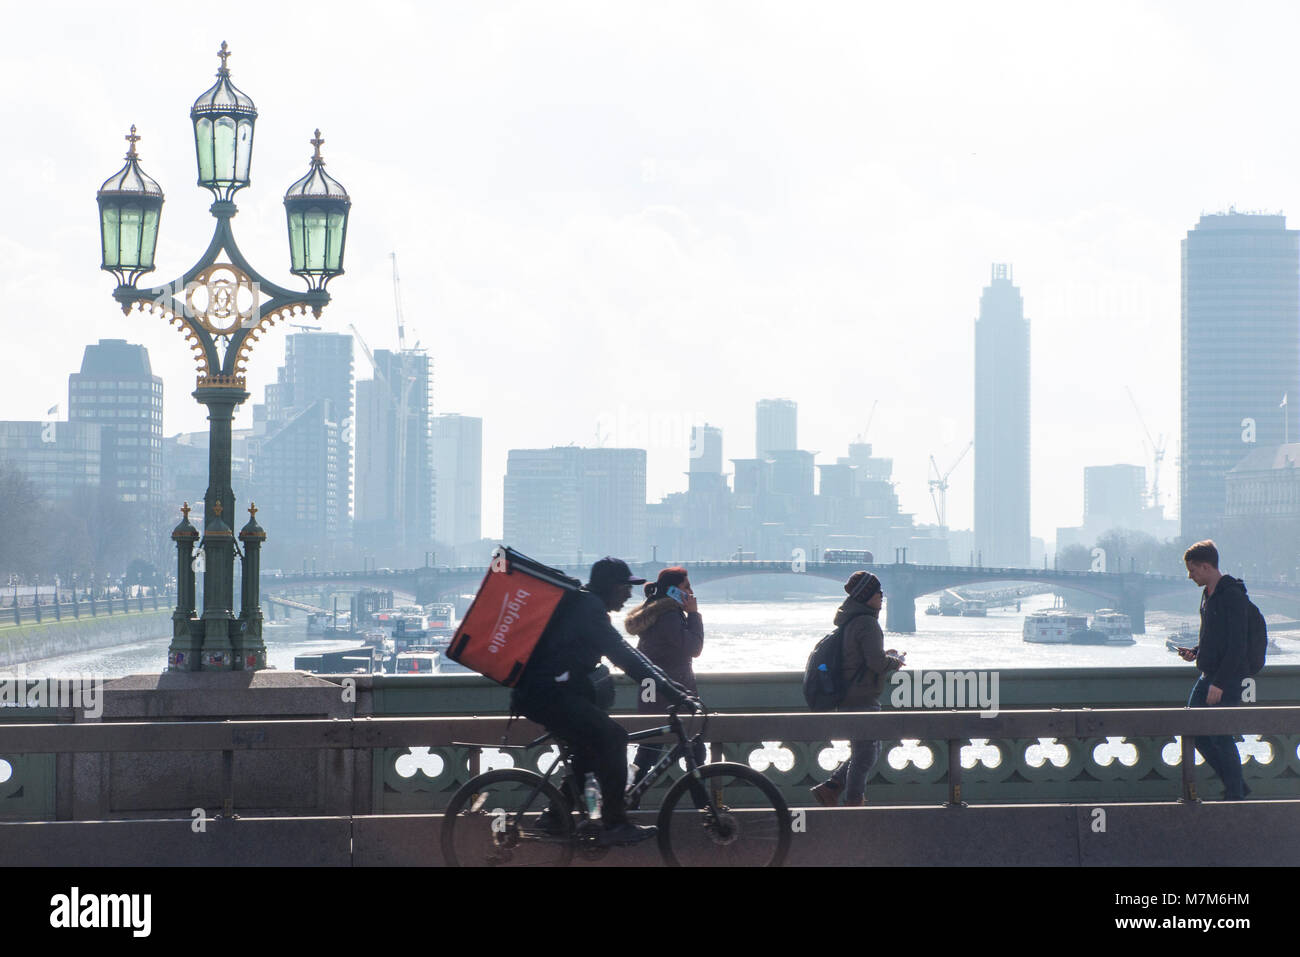 A food delivery rider crossed the River Thames on a cold and misty morning - Stock Image